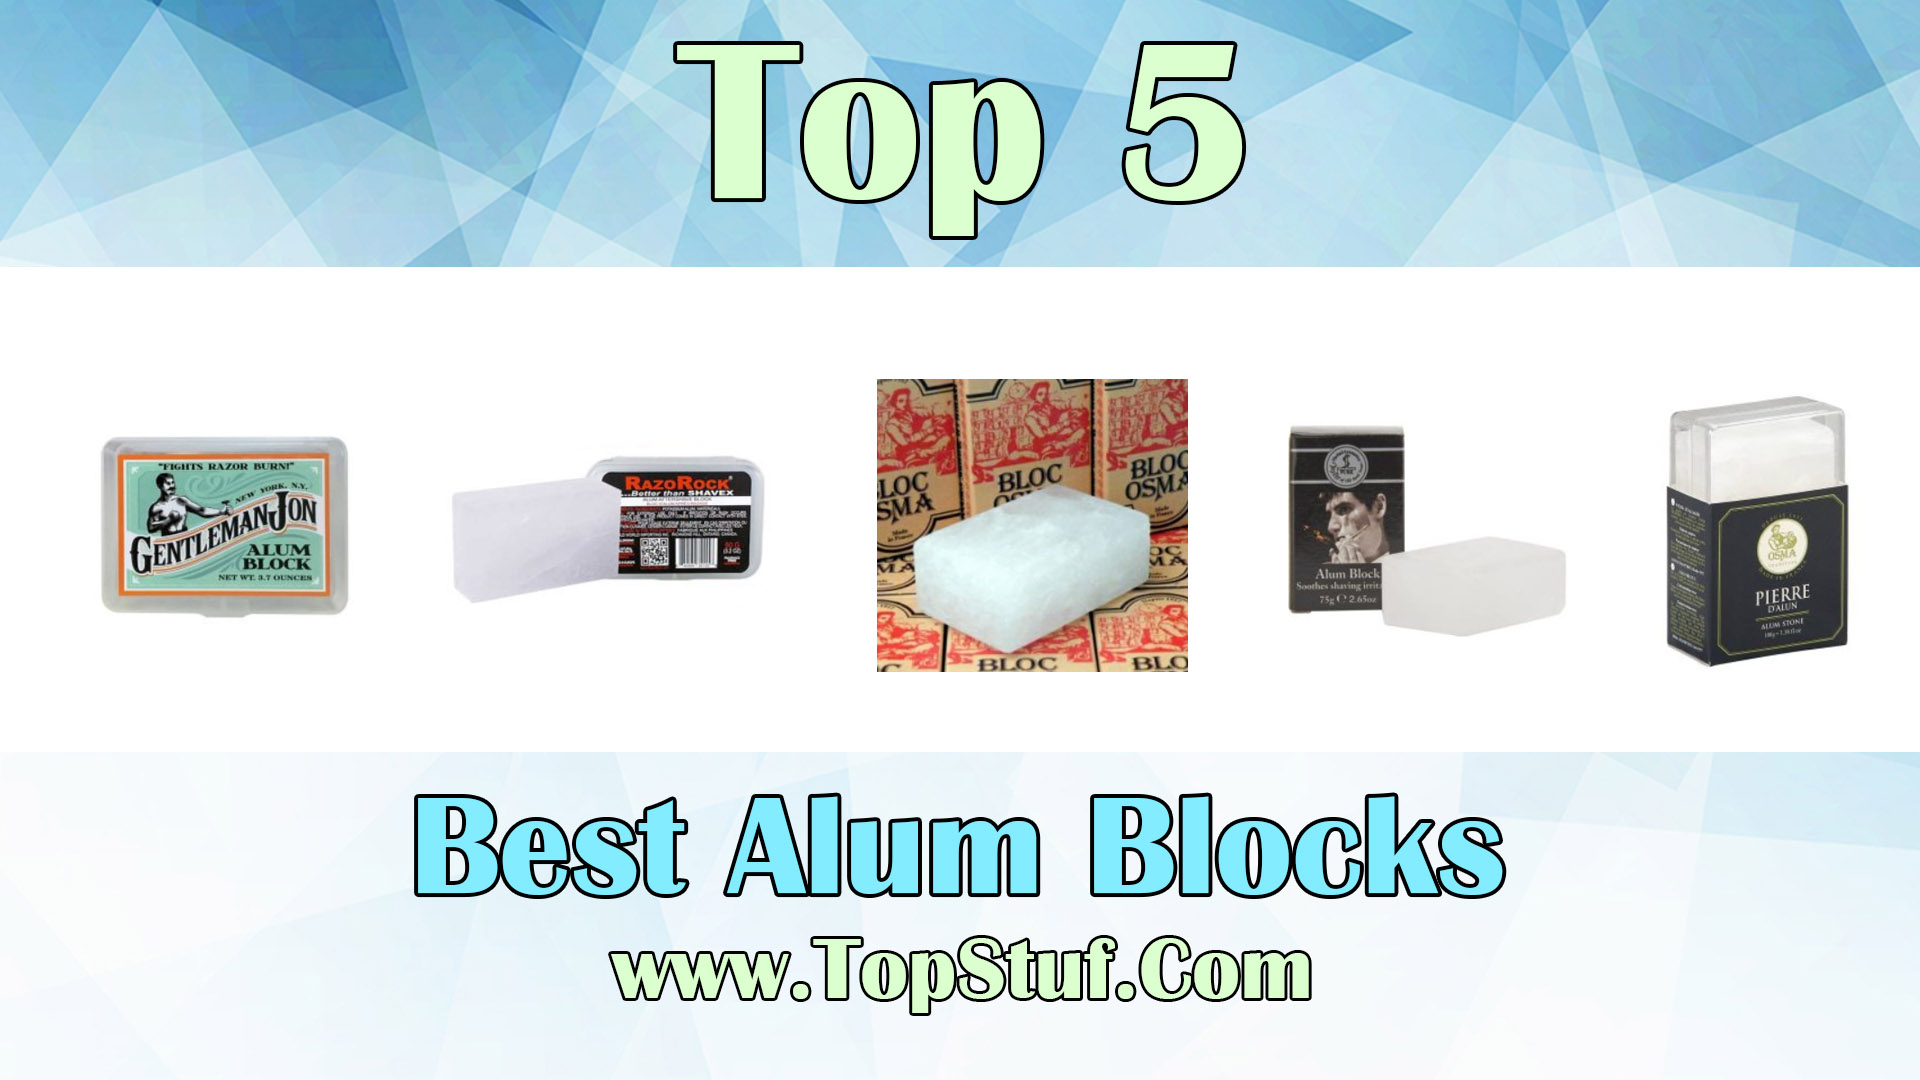 Best Alum Blocks